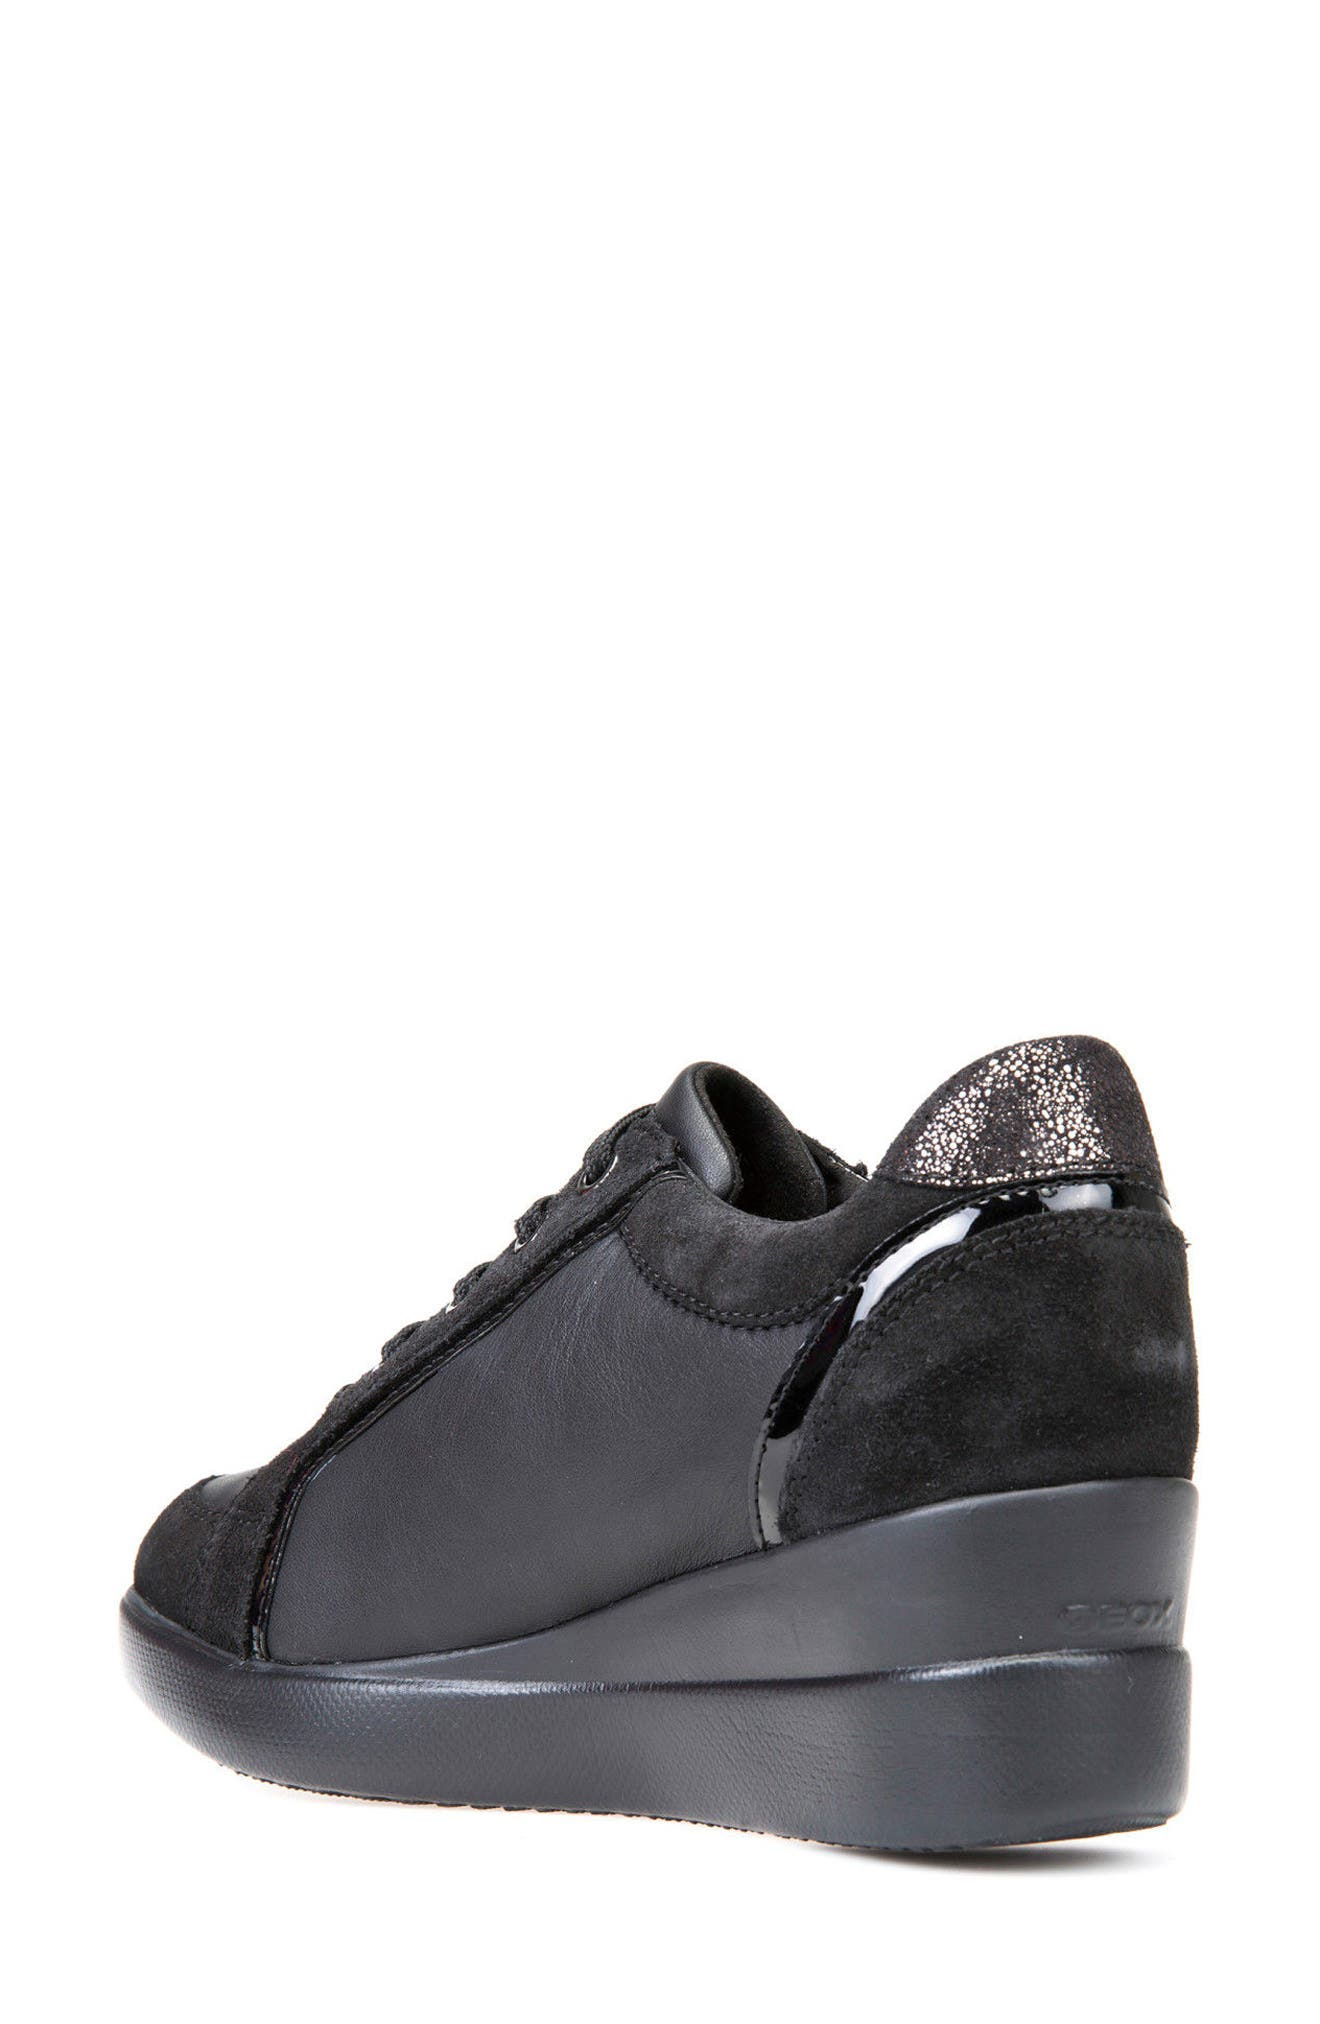 Stardust Wedge Sneaker,                             Alternate thumbnail 2, color,                             Black Leather